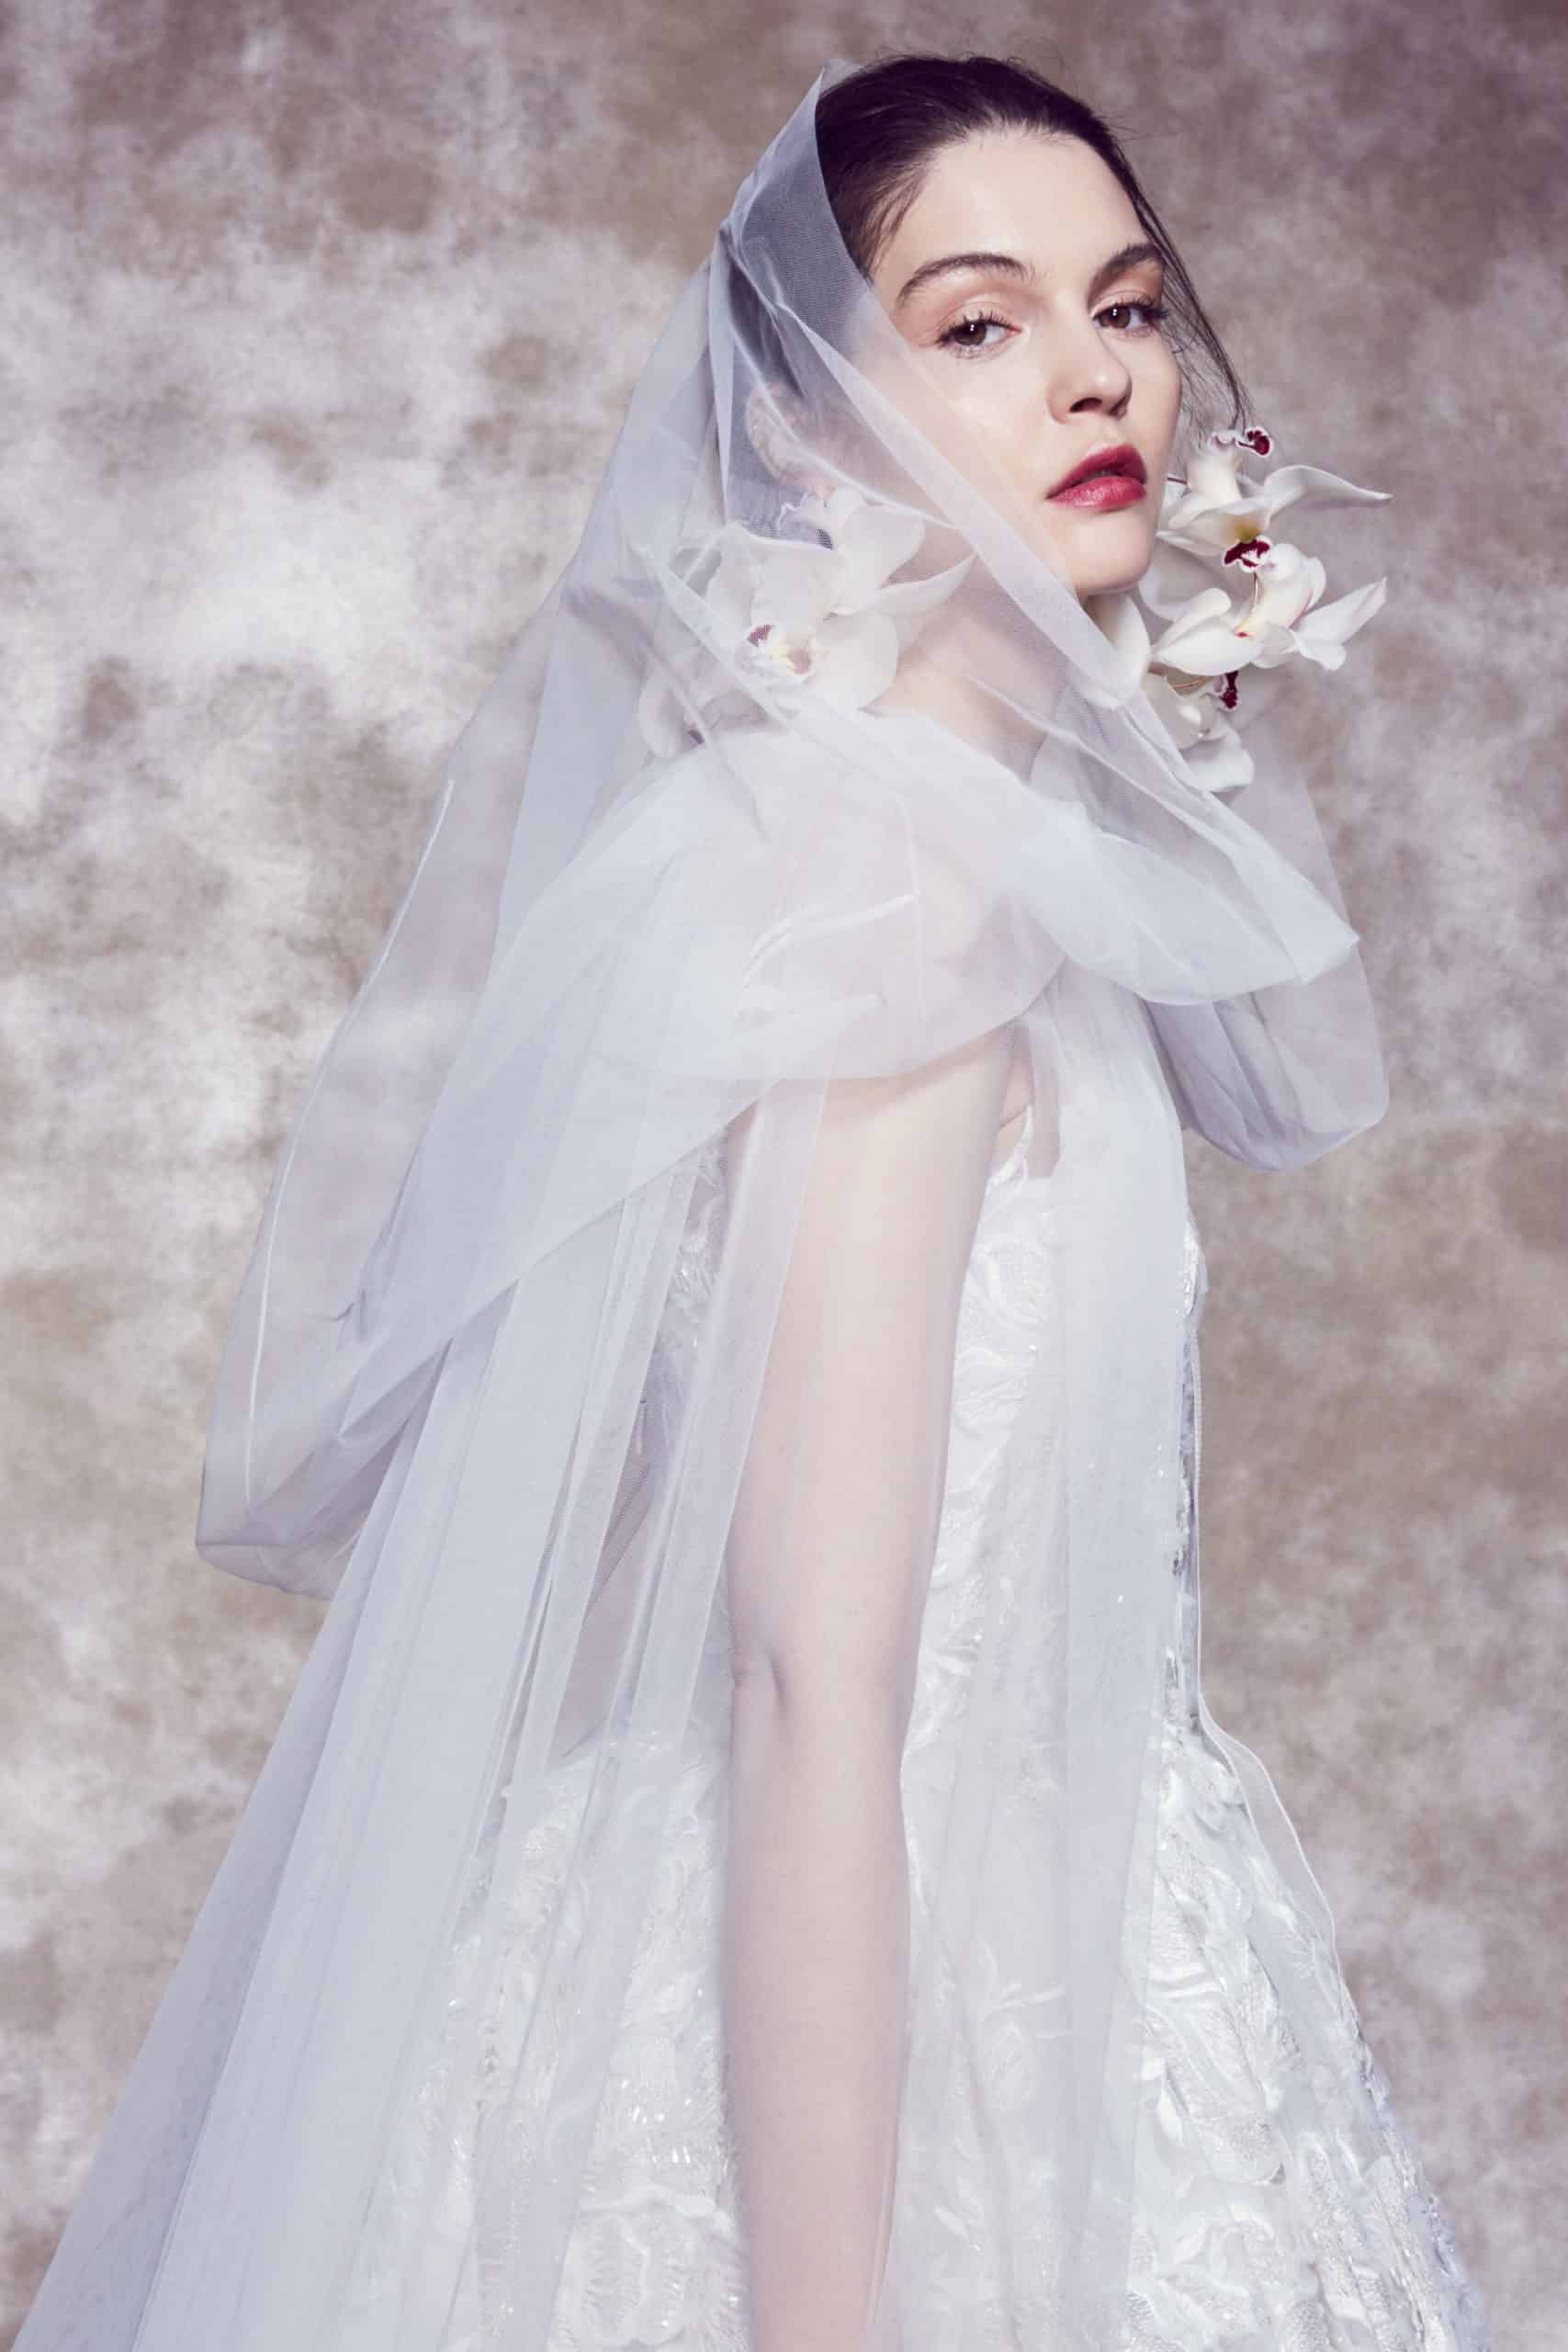 laced wedding dress with tulle veil